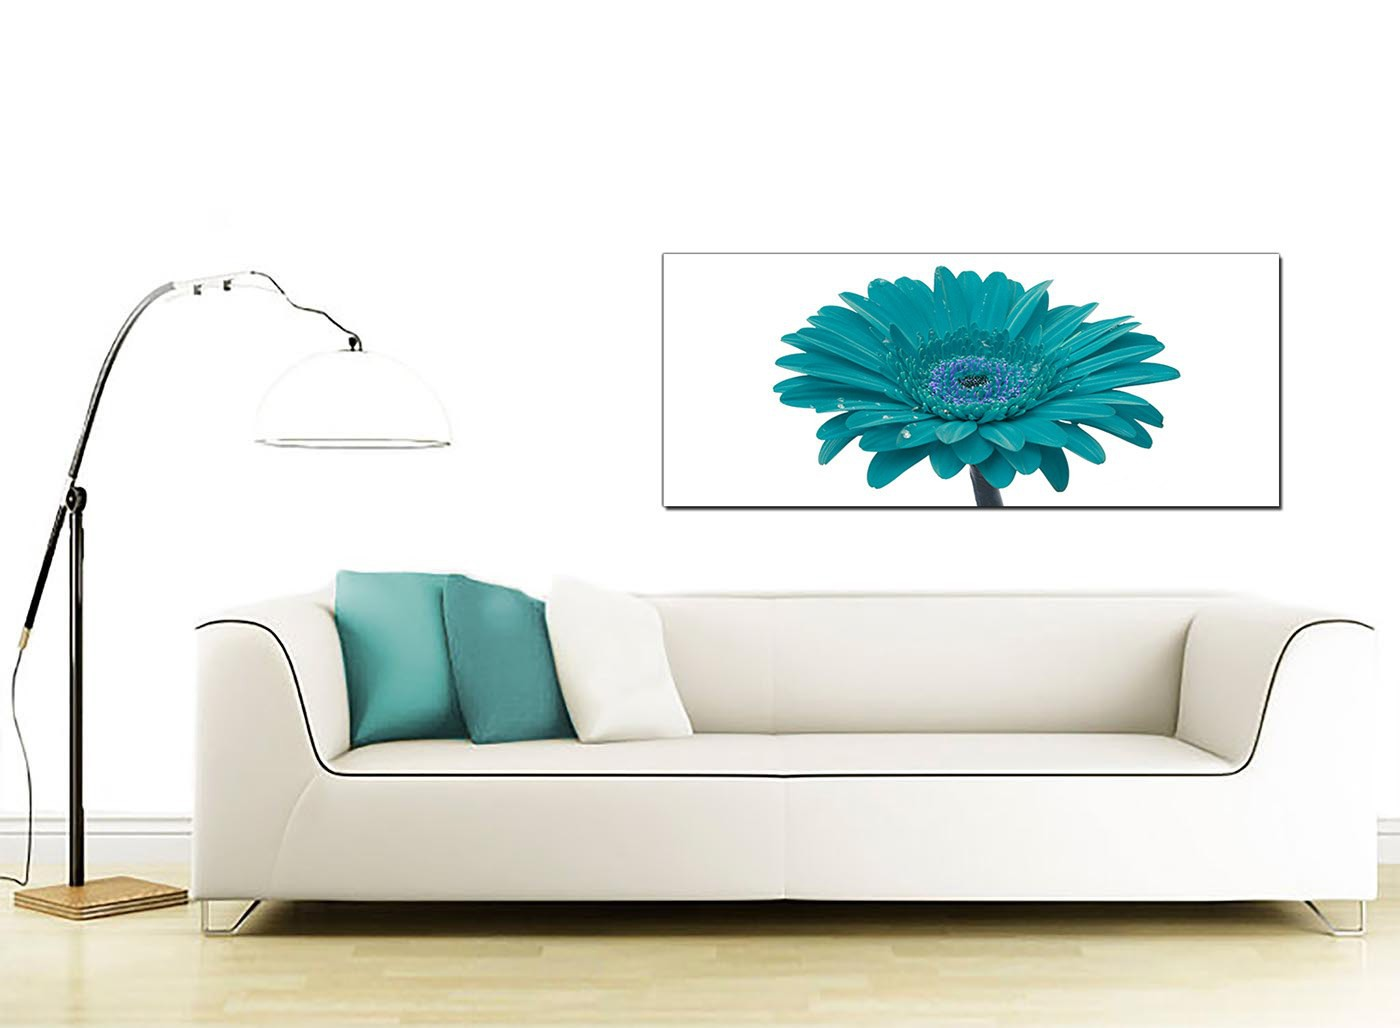 Cheap Canvas Pictures Cheap Teal Canvas Pictures Of A Daisy Flower